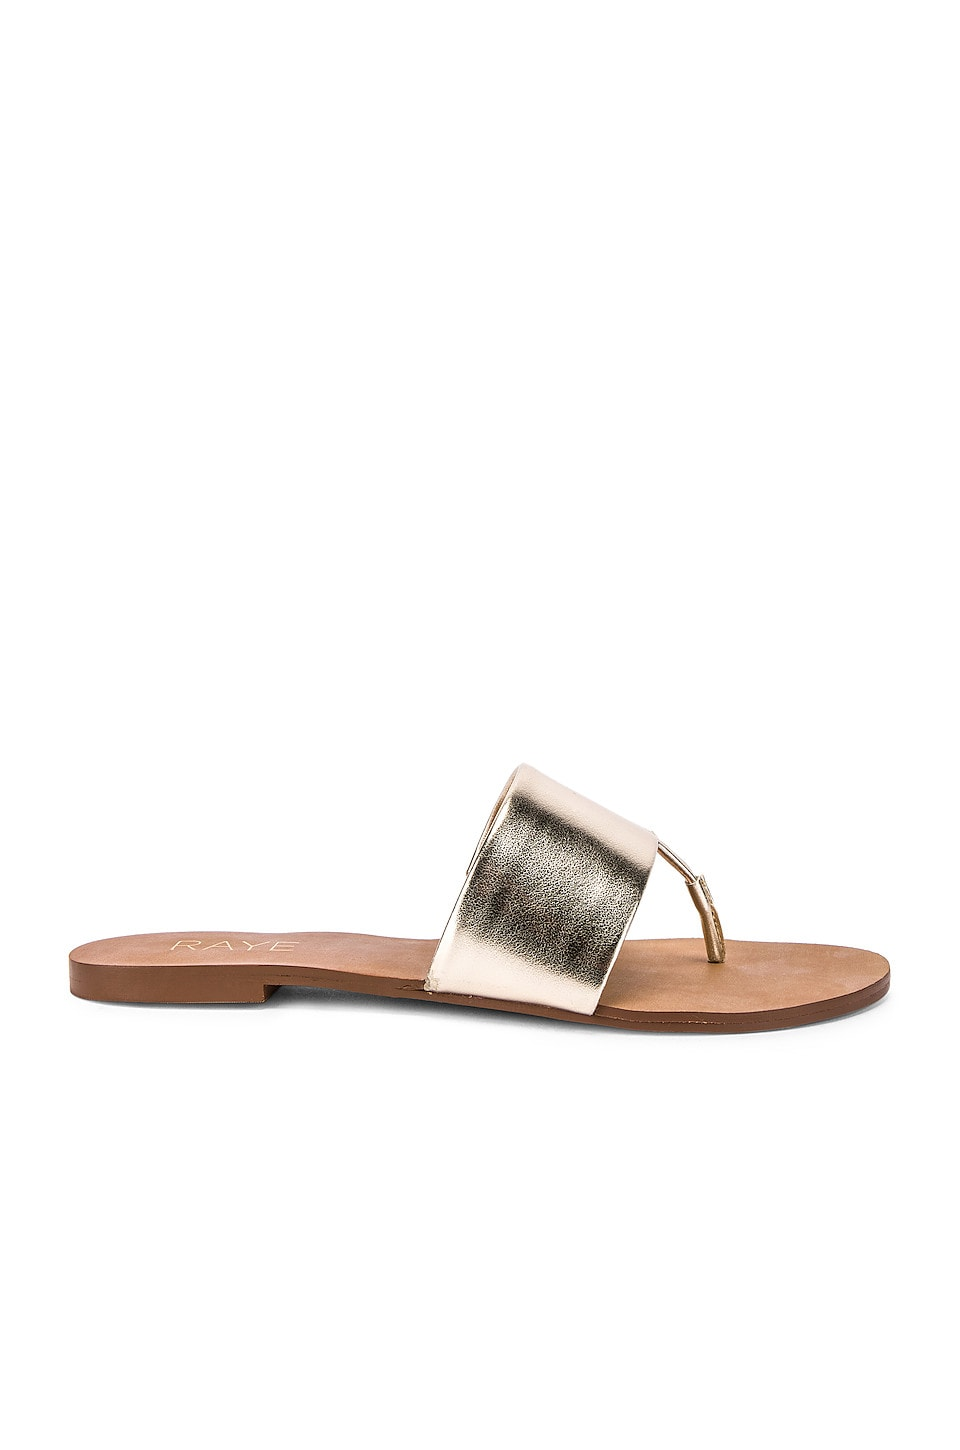 RAYE Ciudad Sandal in Pale Gold